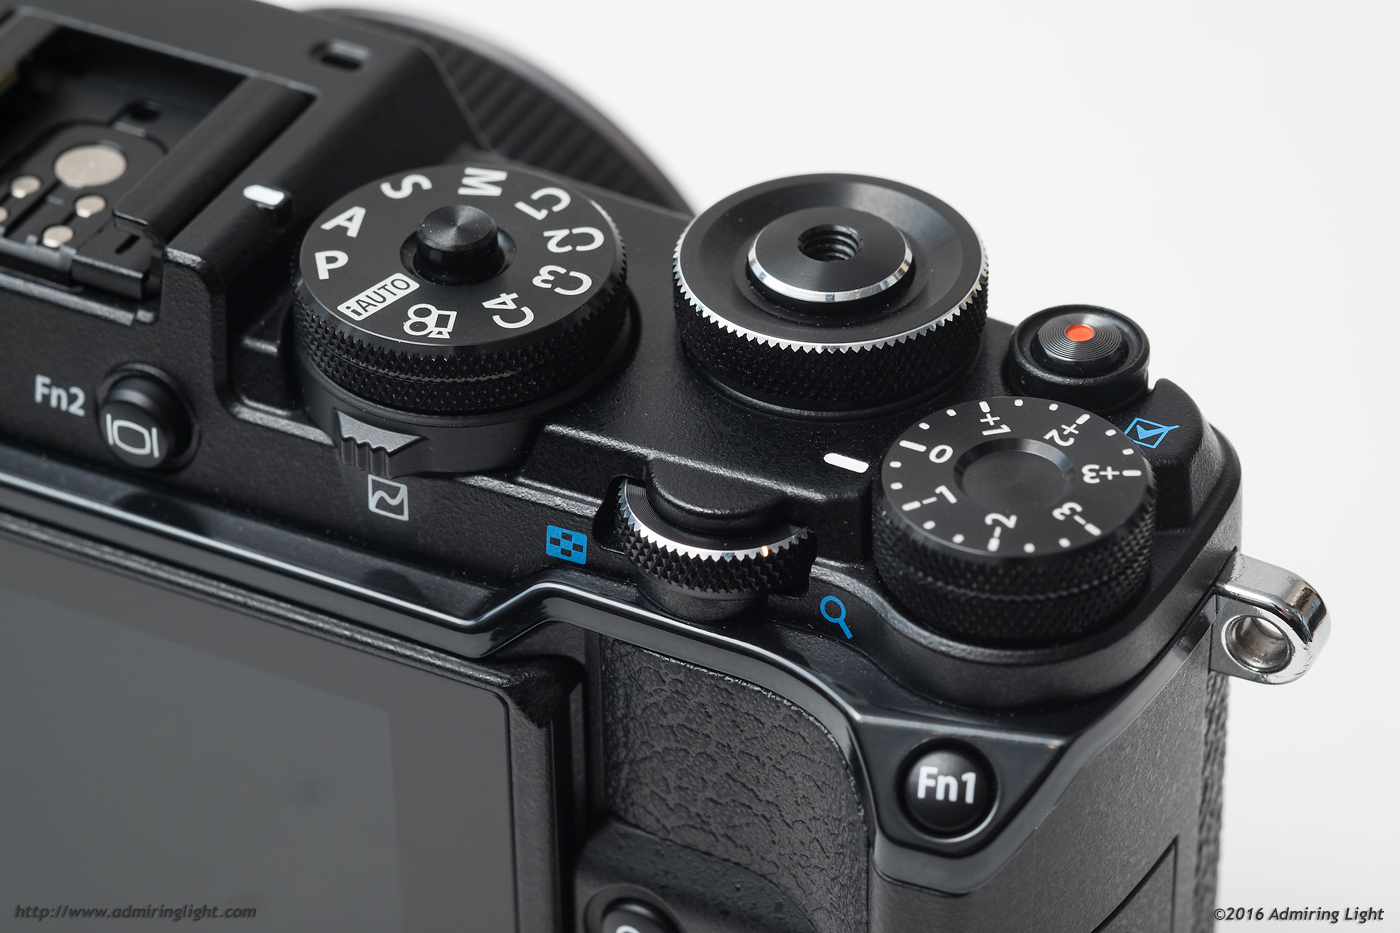 The three major control dials, the mode dial and the curves lever all sit on the top and rear of the camera